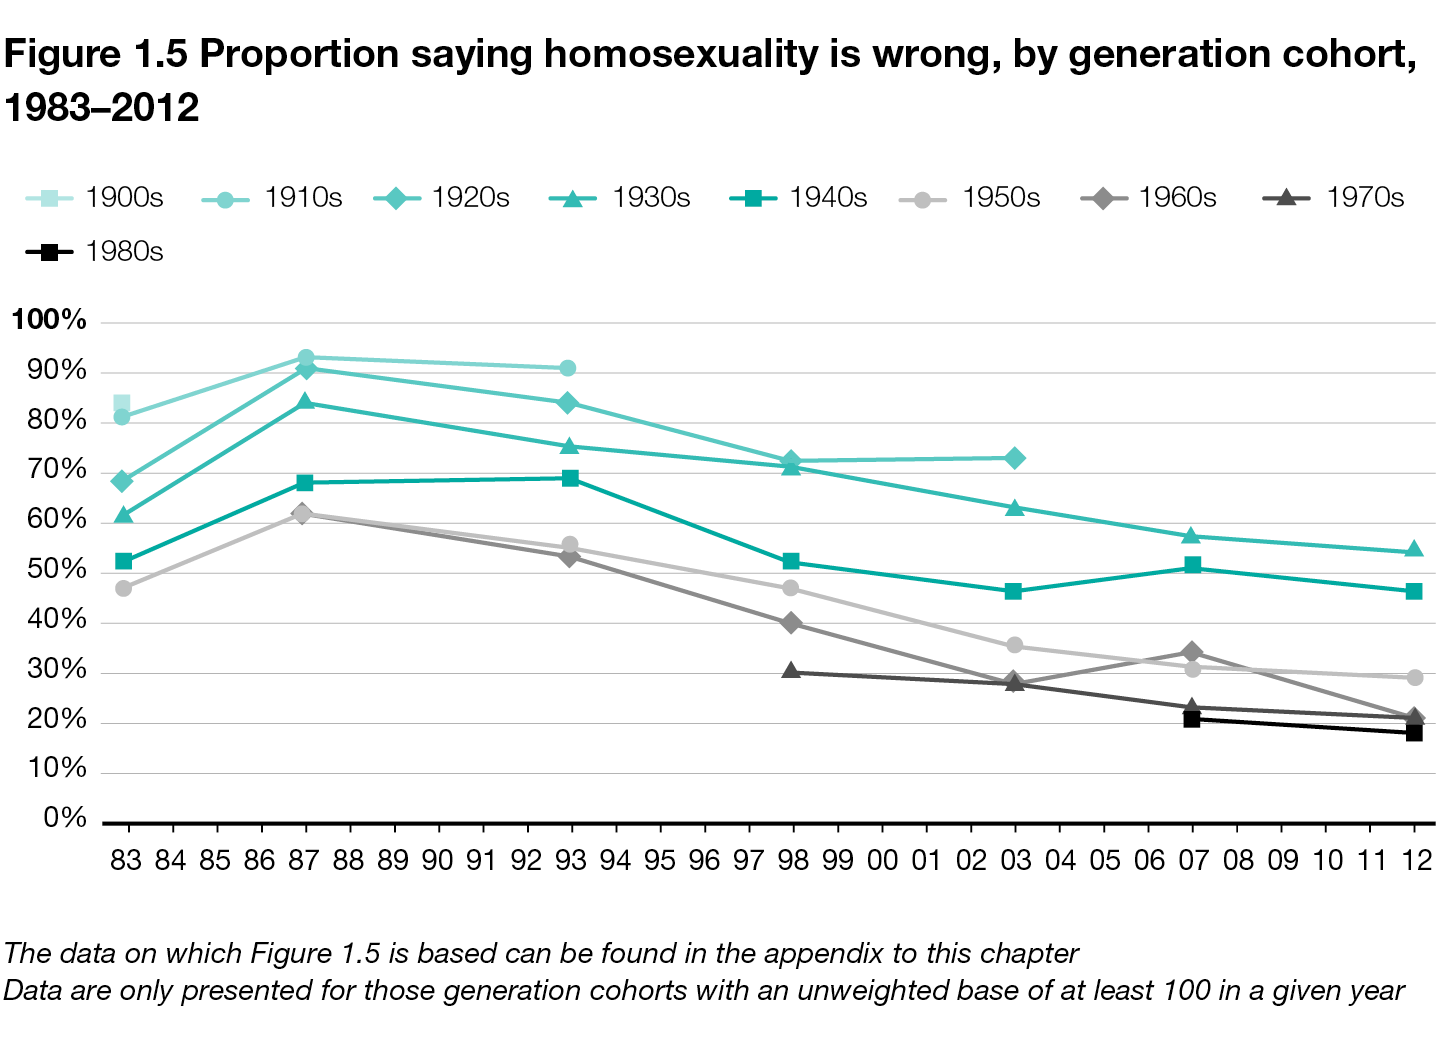 Something is. number of gay people in 1960 what phrase